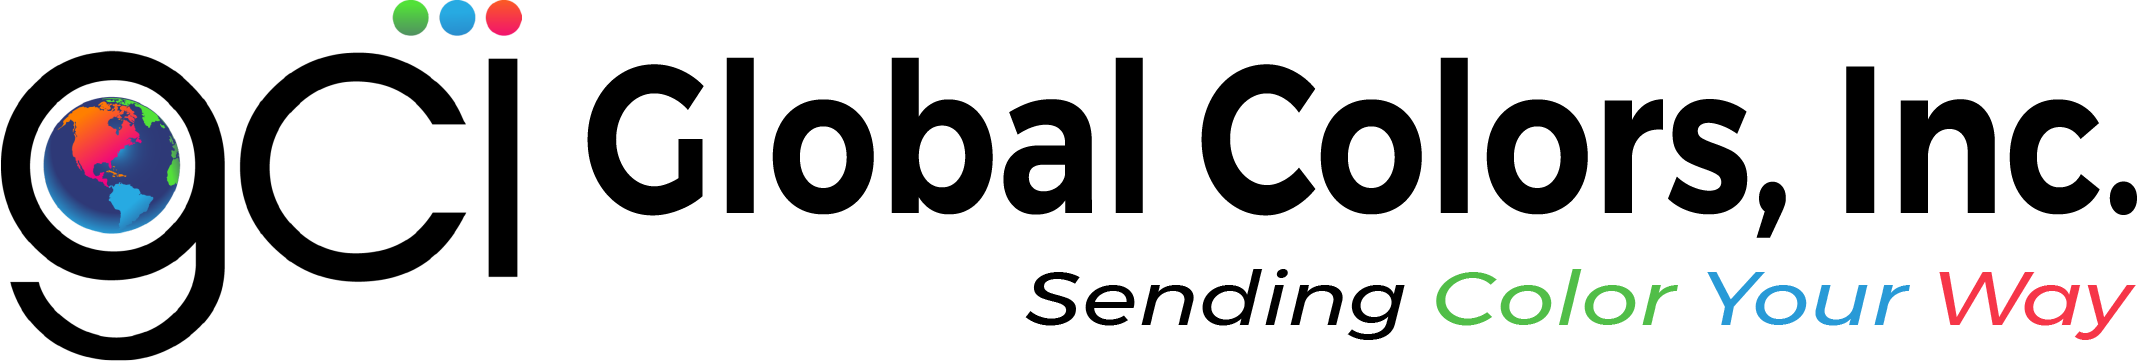 Global Colors, Inc.